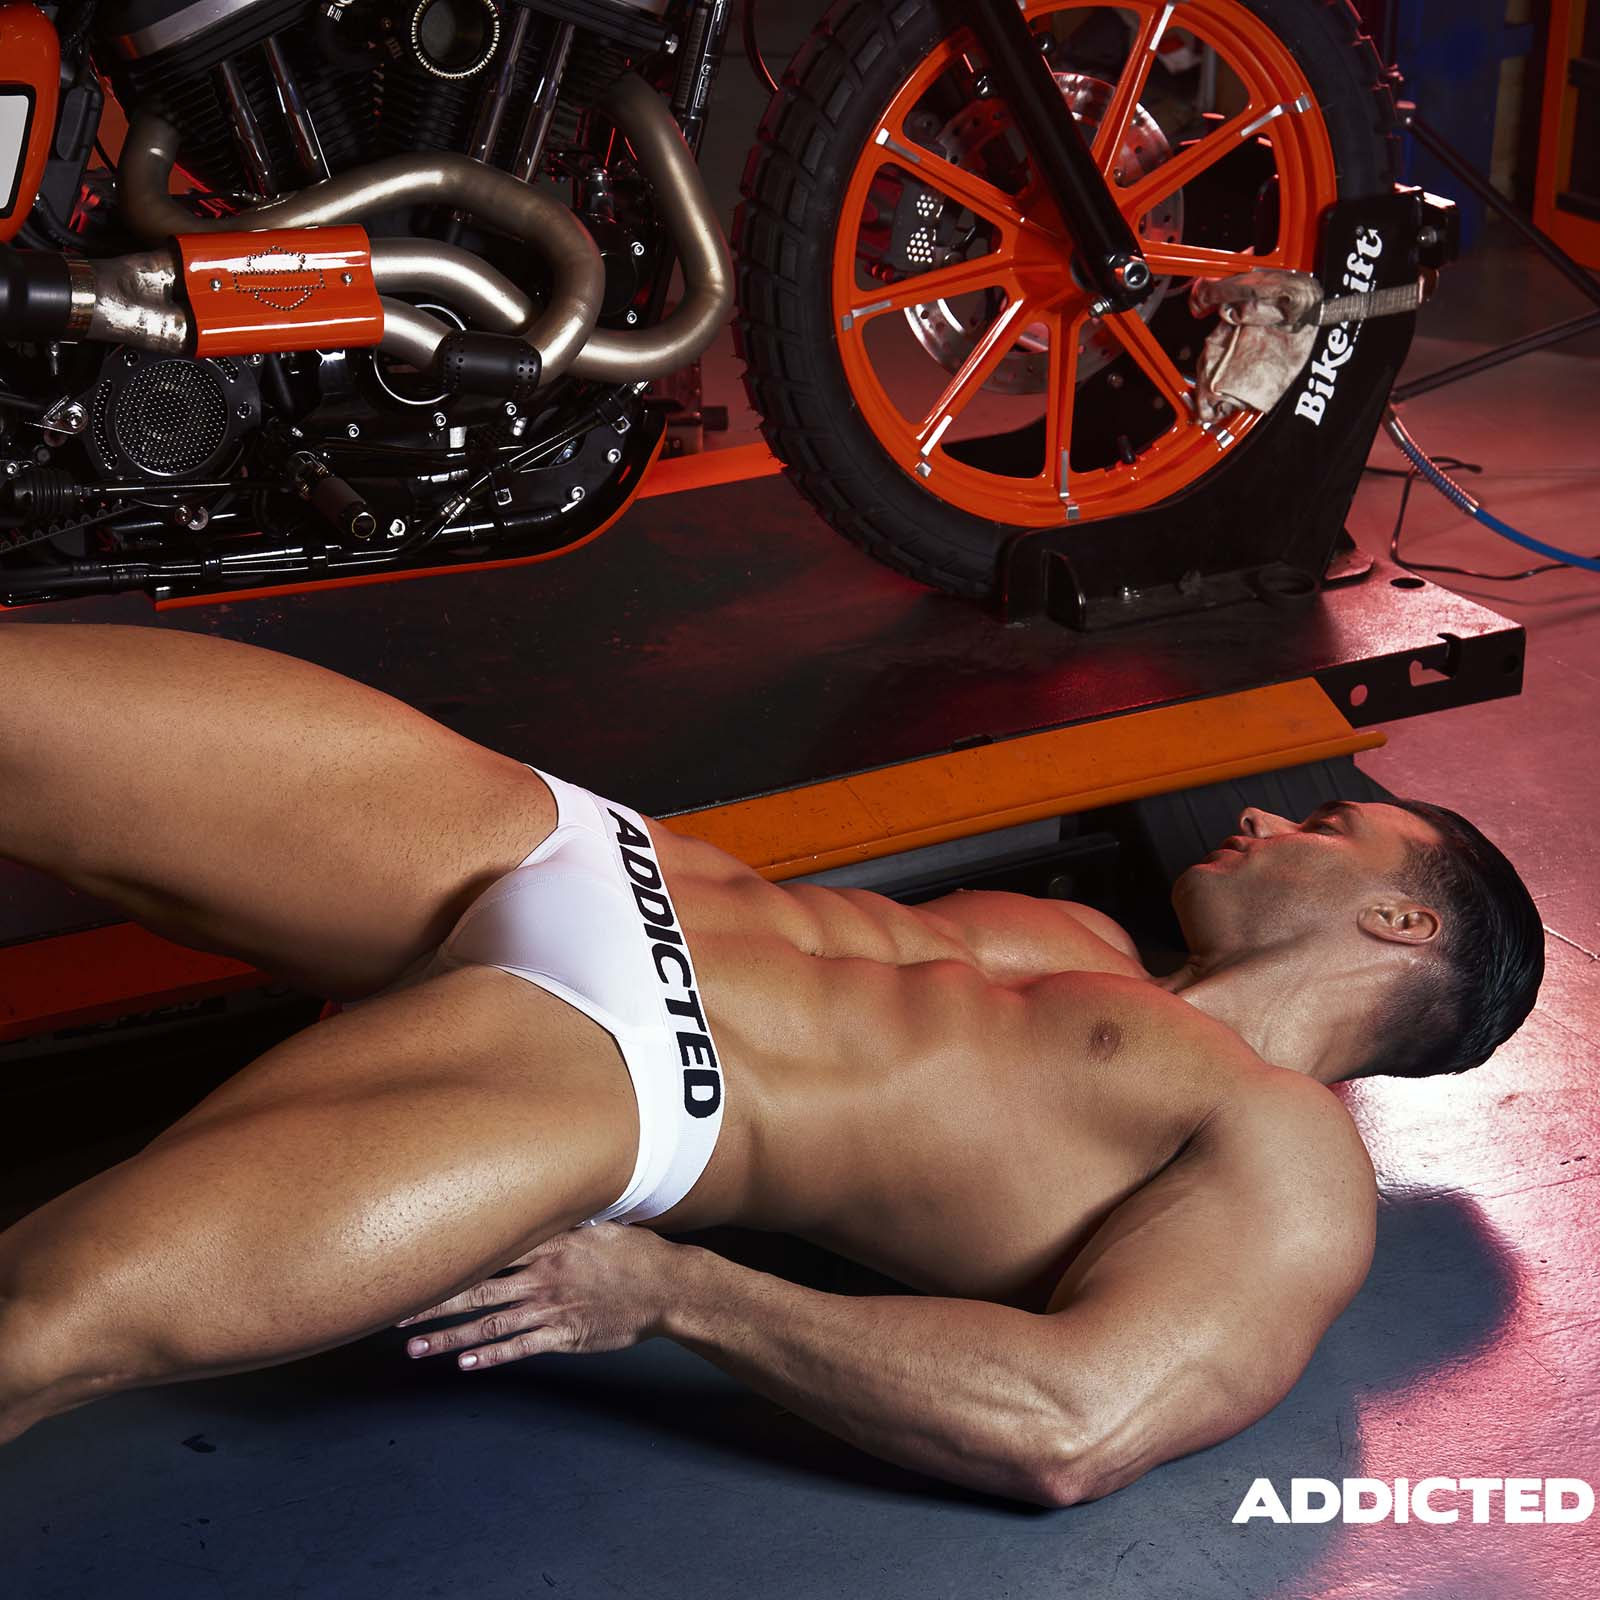 Pack of Briefs Addicted AD420P